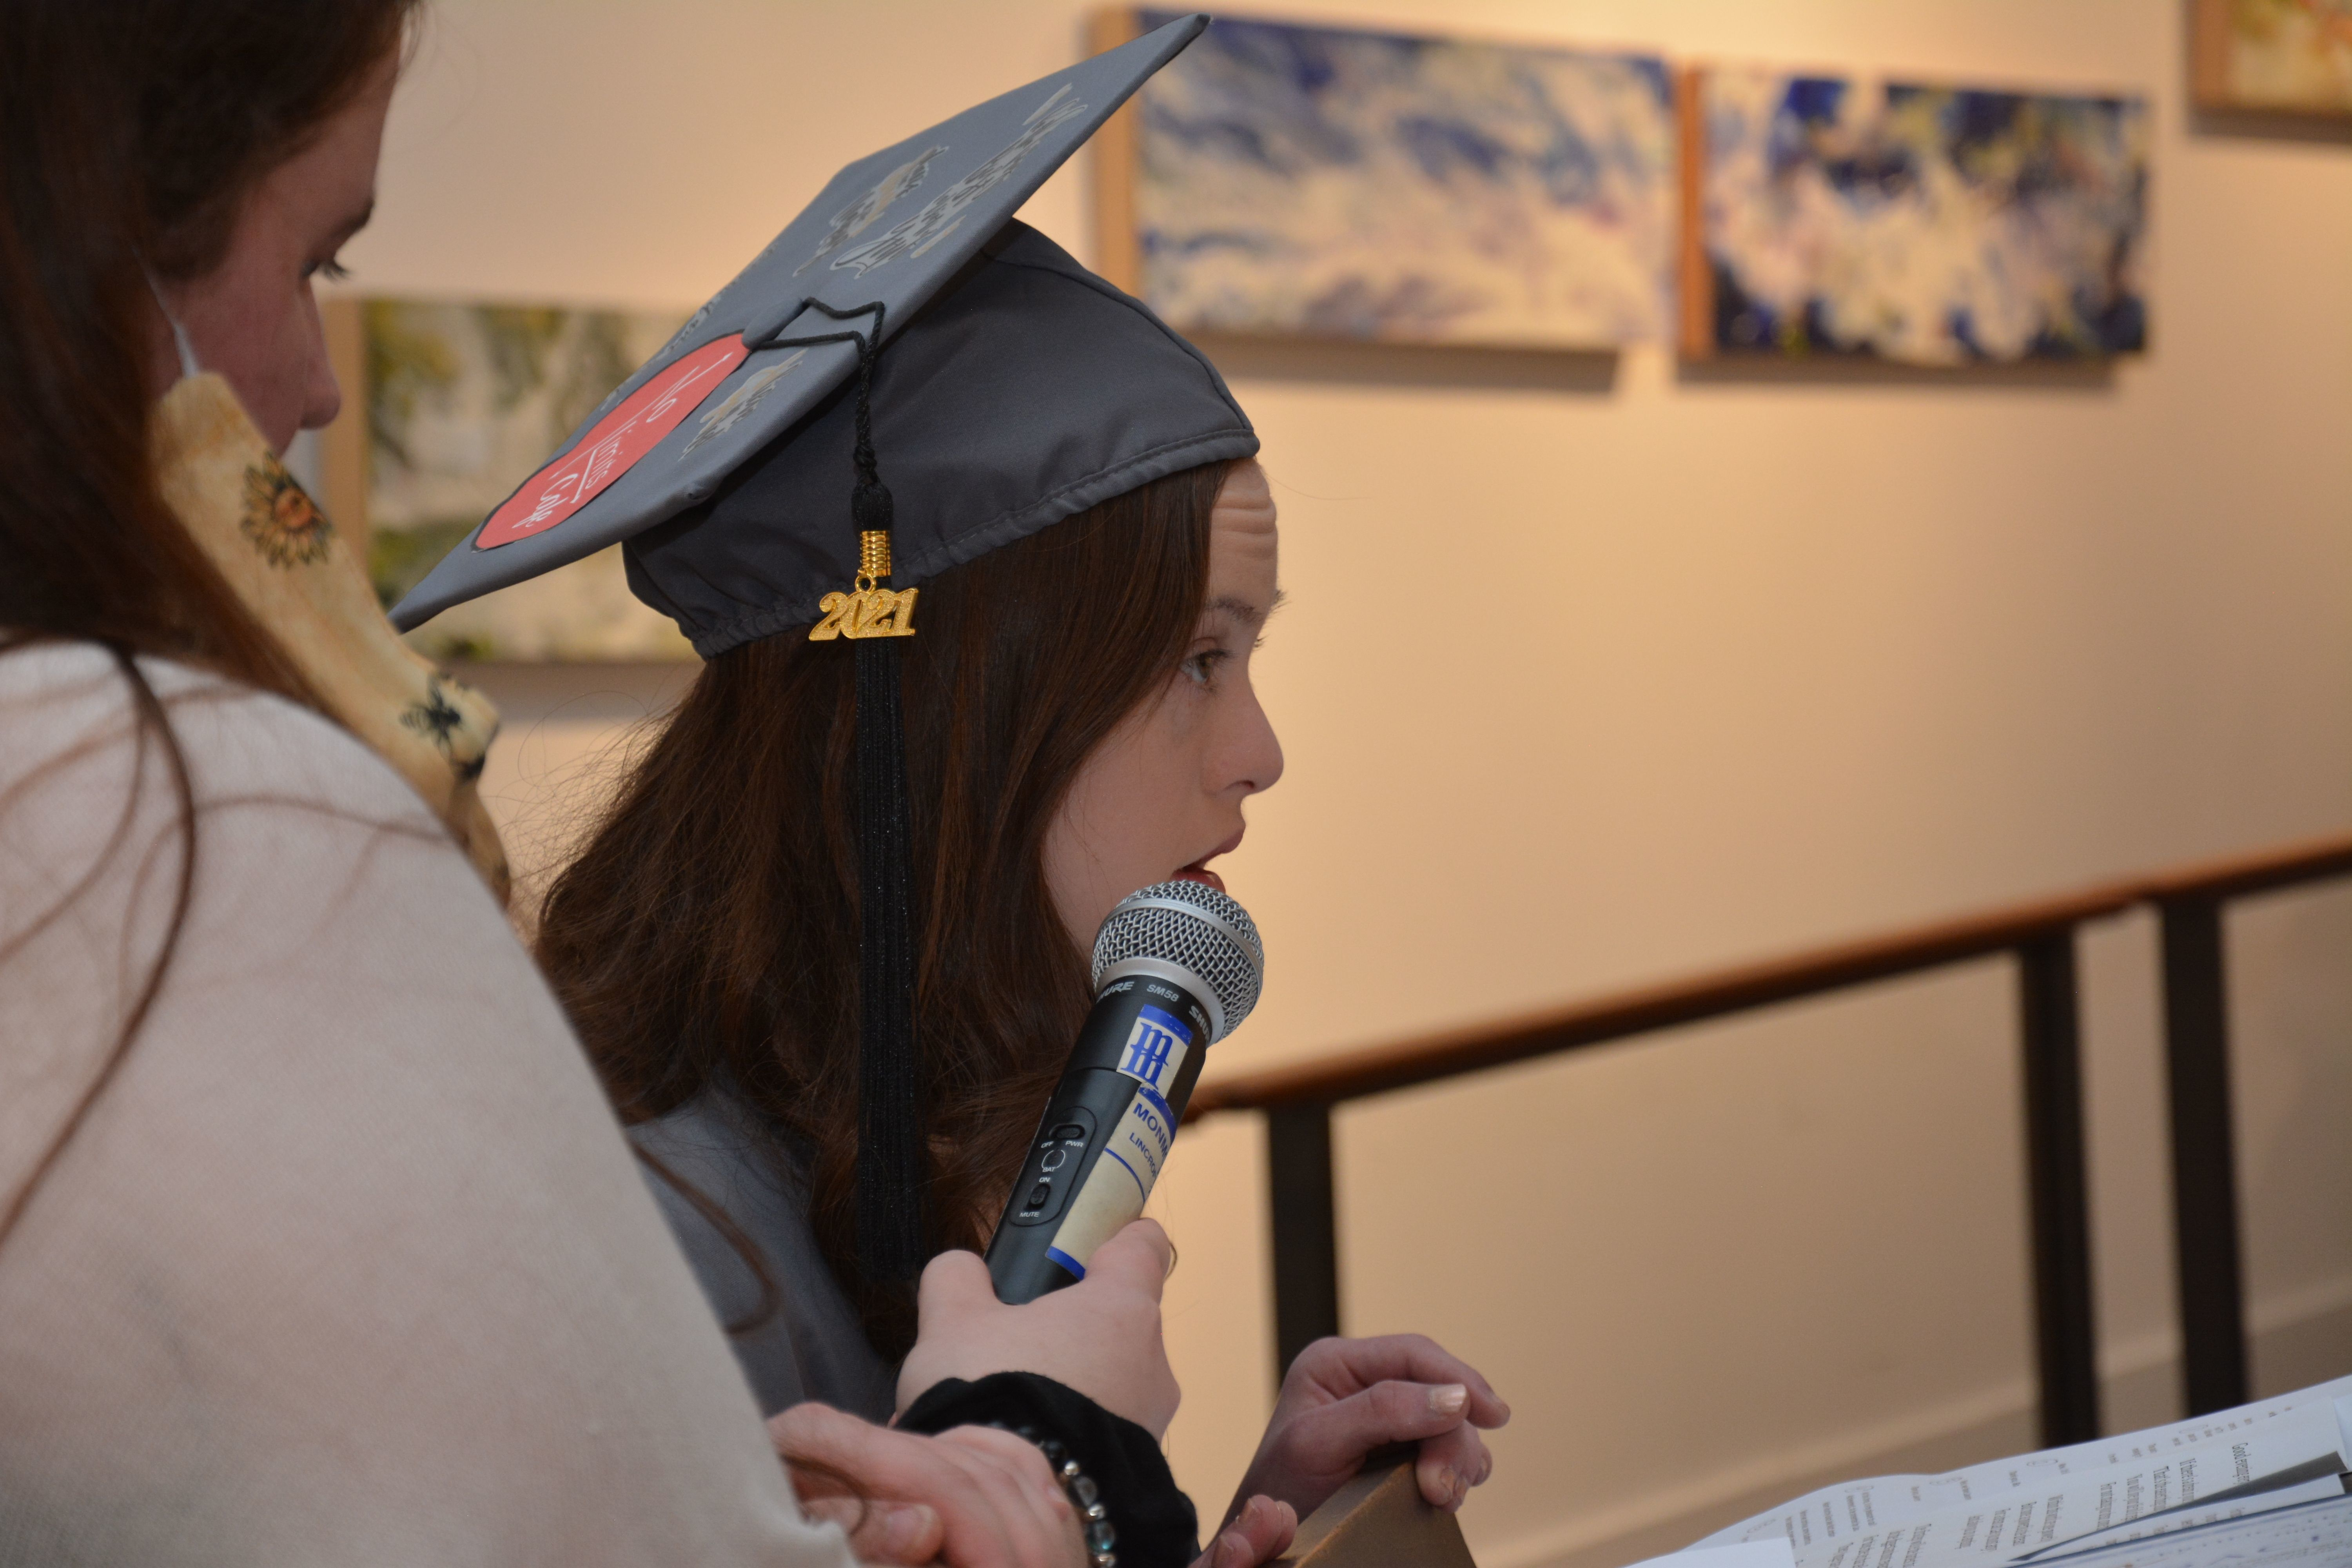 A female student from the KACH program wearing a graduation cap with a 2021 tag.